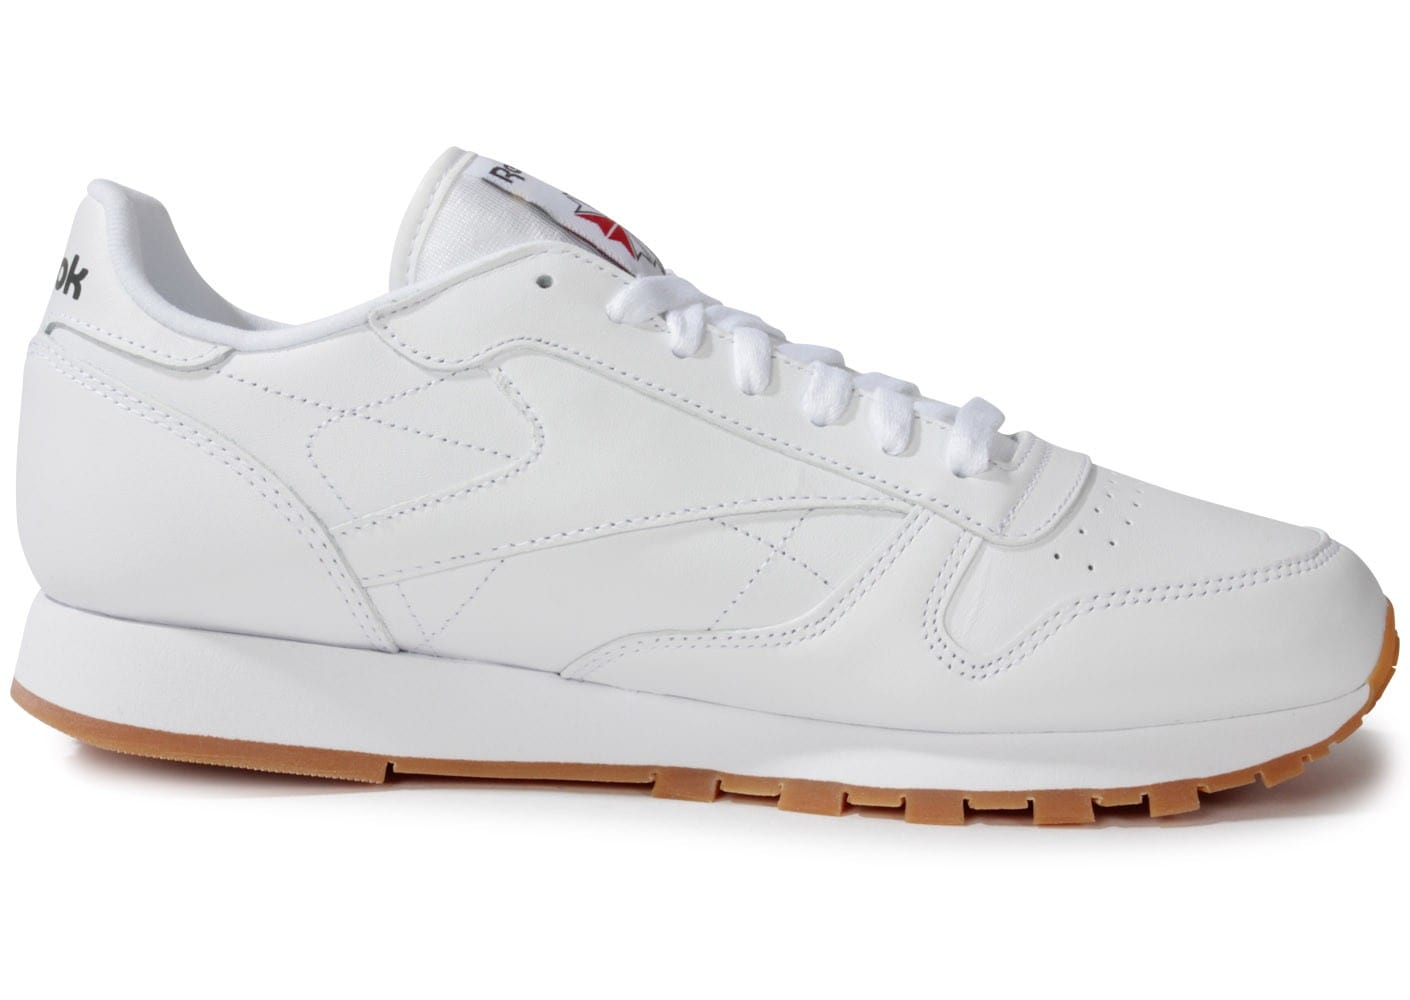 reebok classic leather blanche gum chaussures homme chausport. Black Bedroom Furniture Sets. Home Design Ideas